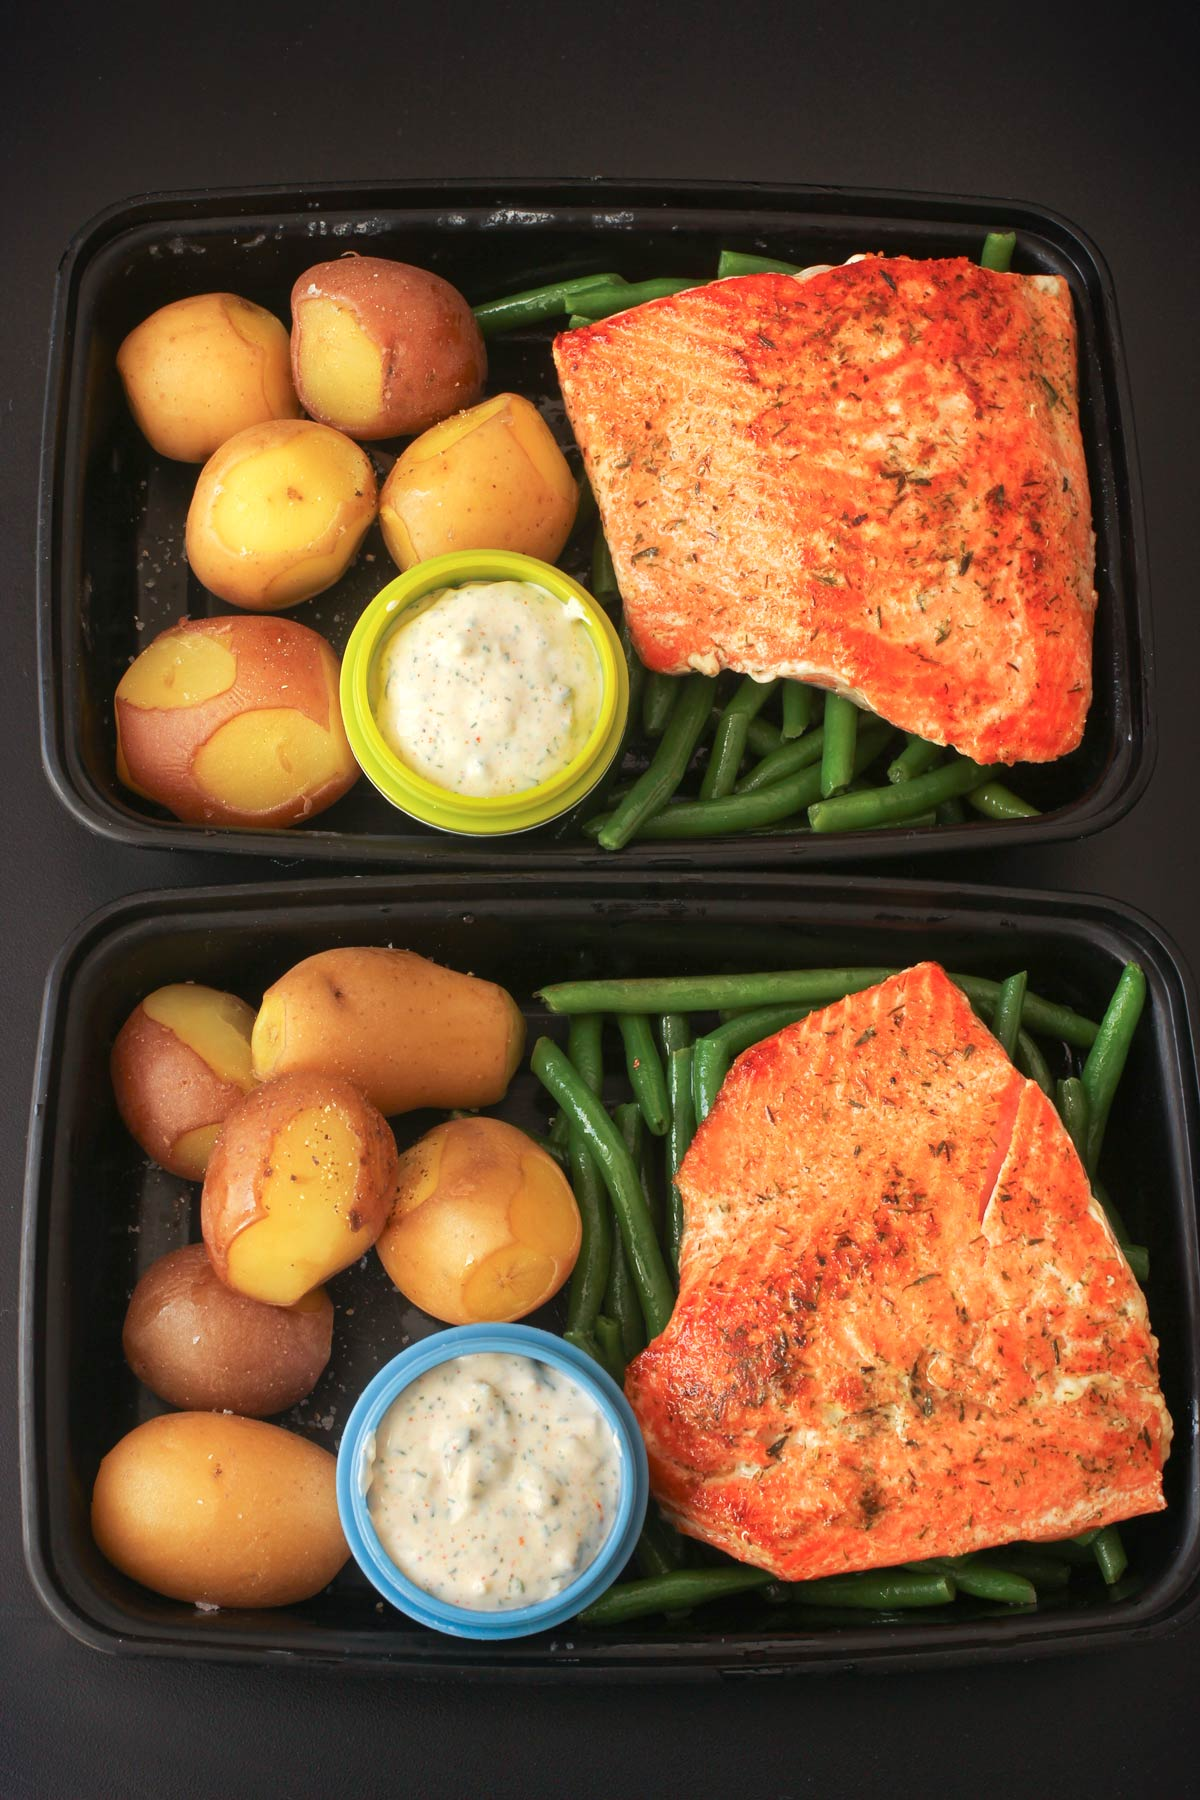 meal prep boxes with green beans, salmon, and potatoes with tartar sauce.